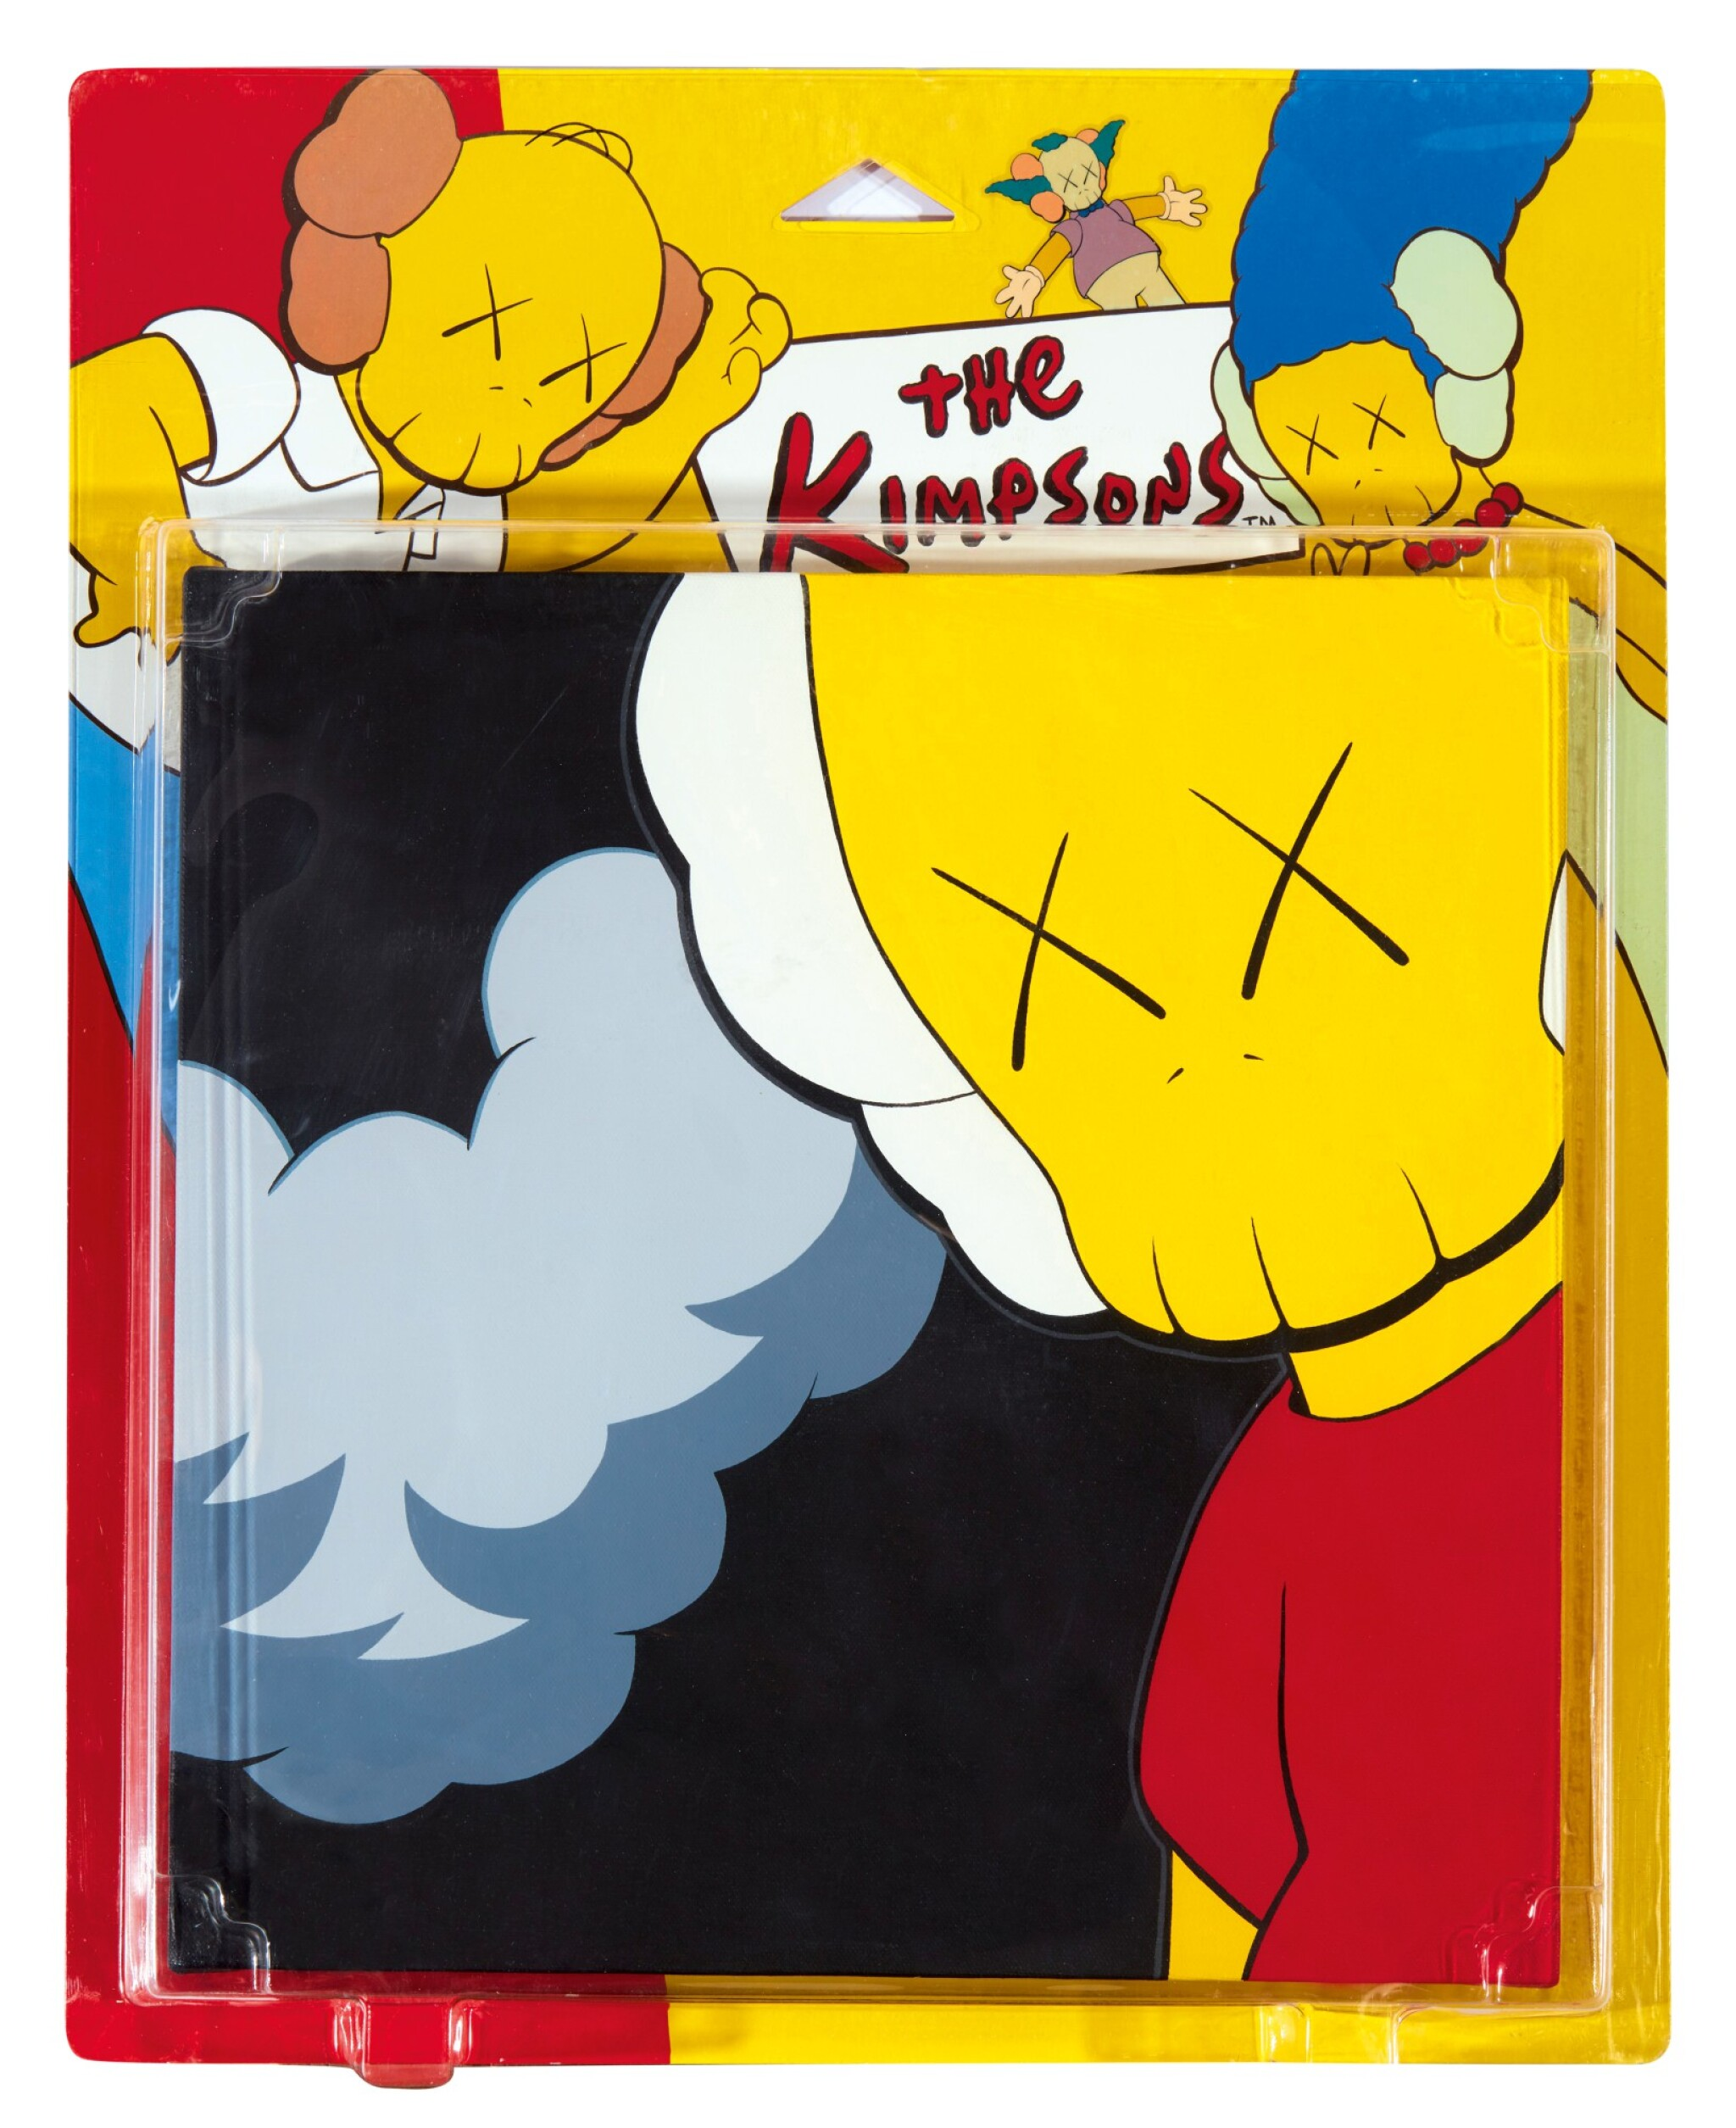 View full screen - View 1 of Lot 46. KAWS | UNTITLED (KIMPSONS) (Package Painting Series) 無題(KIMPSONS)(包裝畫系列).